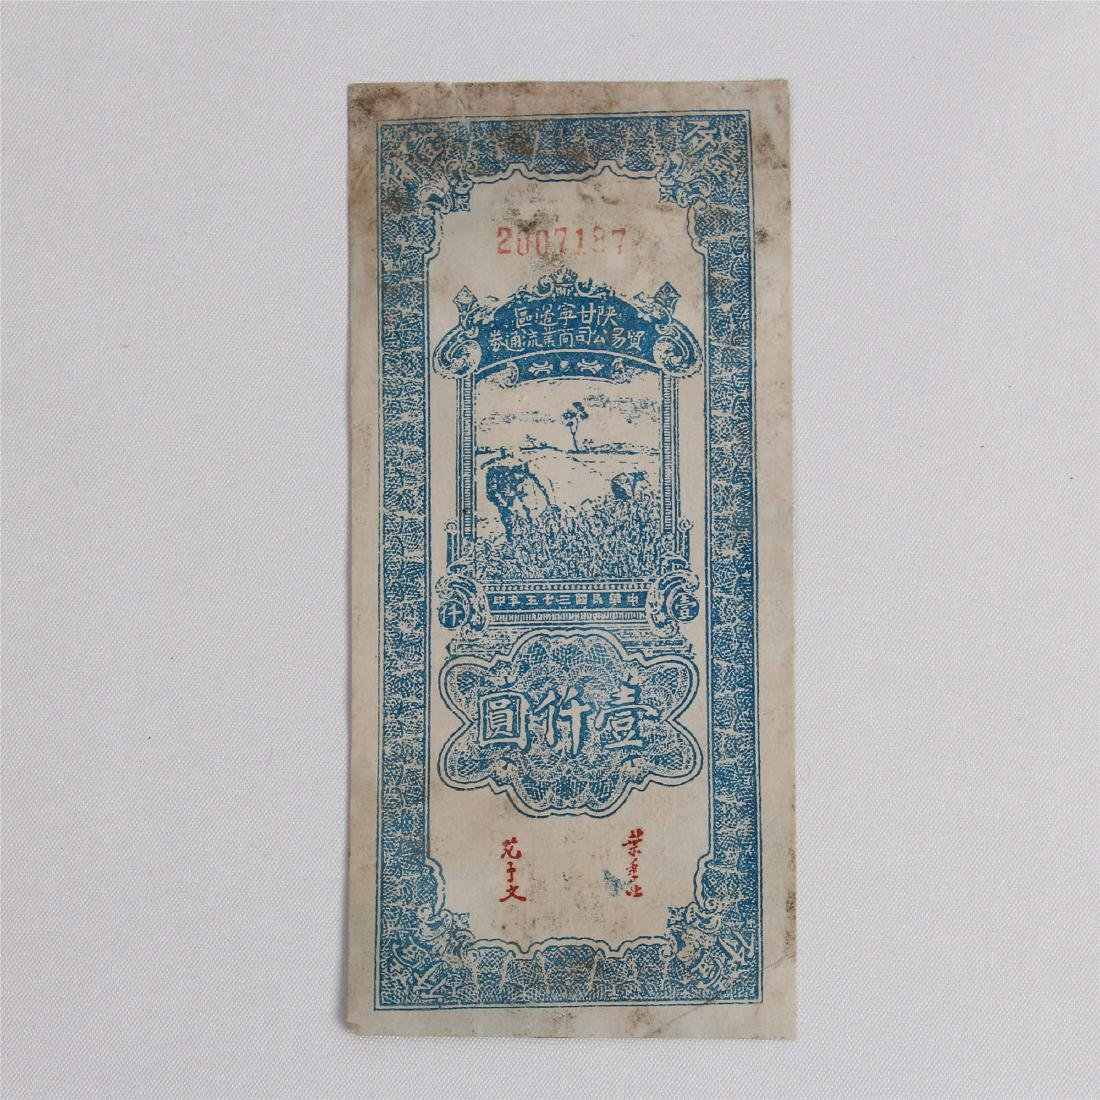 CHINESE ANCIENT BANKNOTE